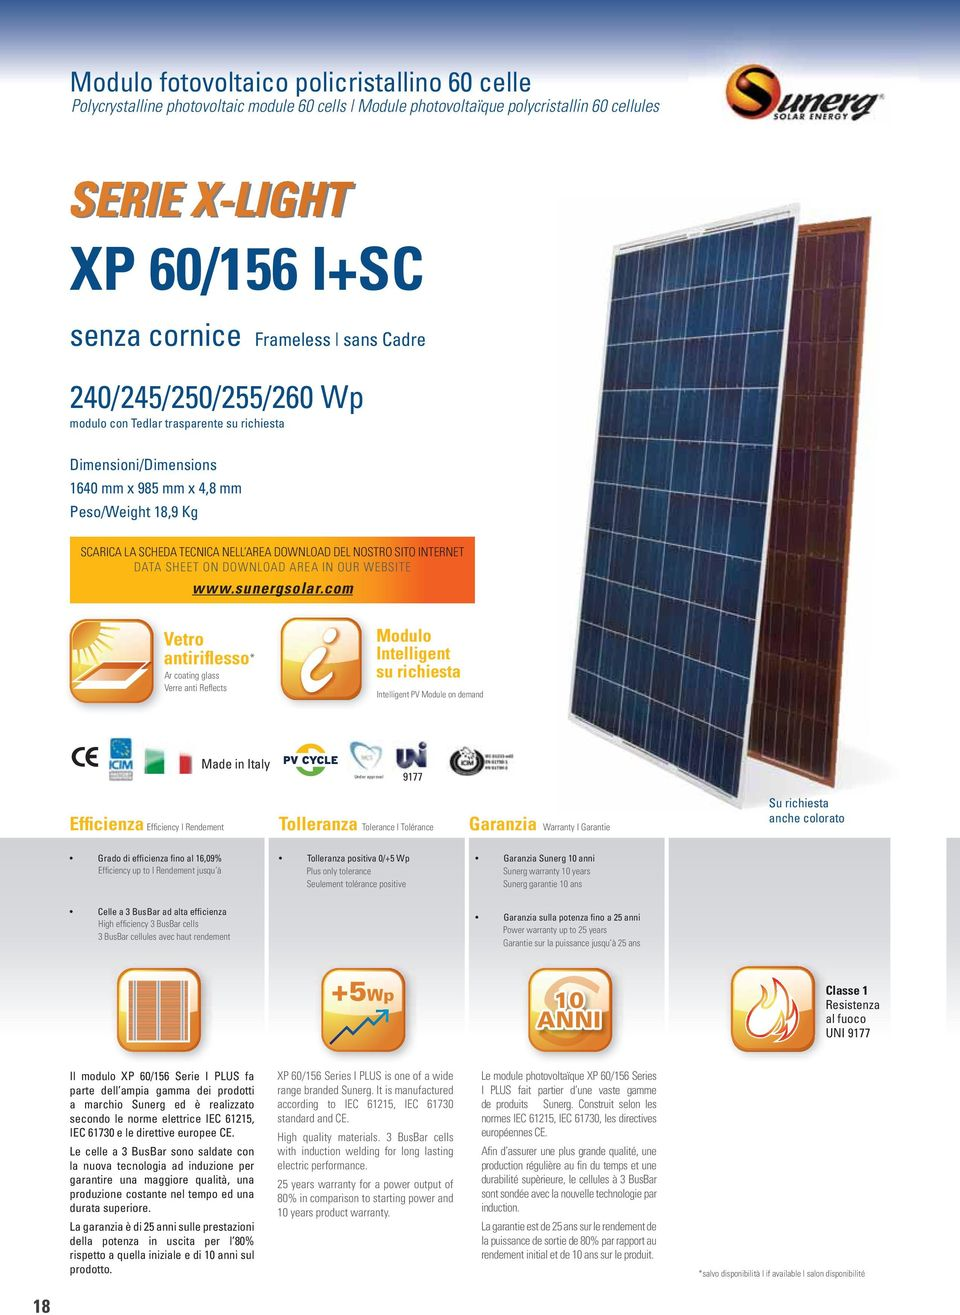 SITO INTERNET DATA SHEET ON DOWNLOAD AREA IN OUR WEBSITE www.sunergsolar.